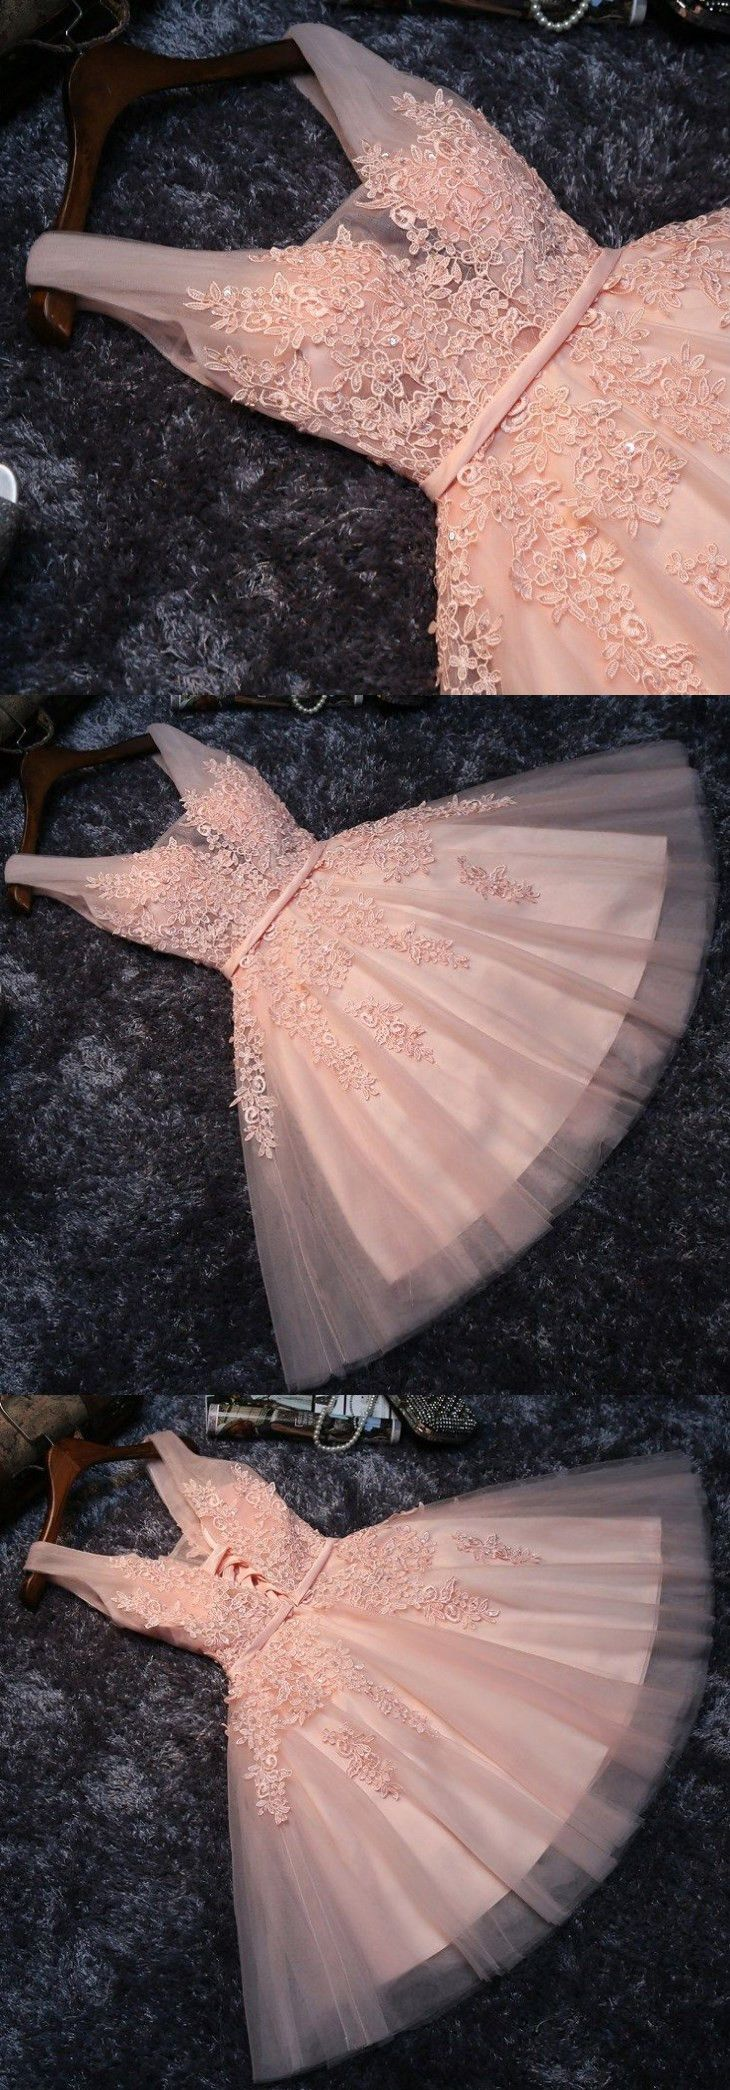 Lace Homecoming Dress,Short Homecoming Dresses,Blush Pink Short Homecoming Dresses, Princess Lace Appliqued Tulle Homecoming Dress,Lace Homecoming Dresses,Short Prom Dress